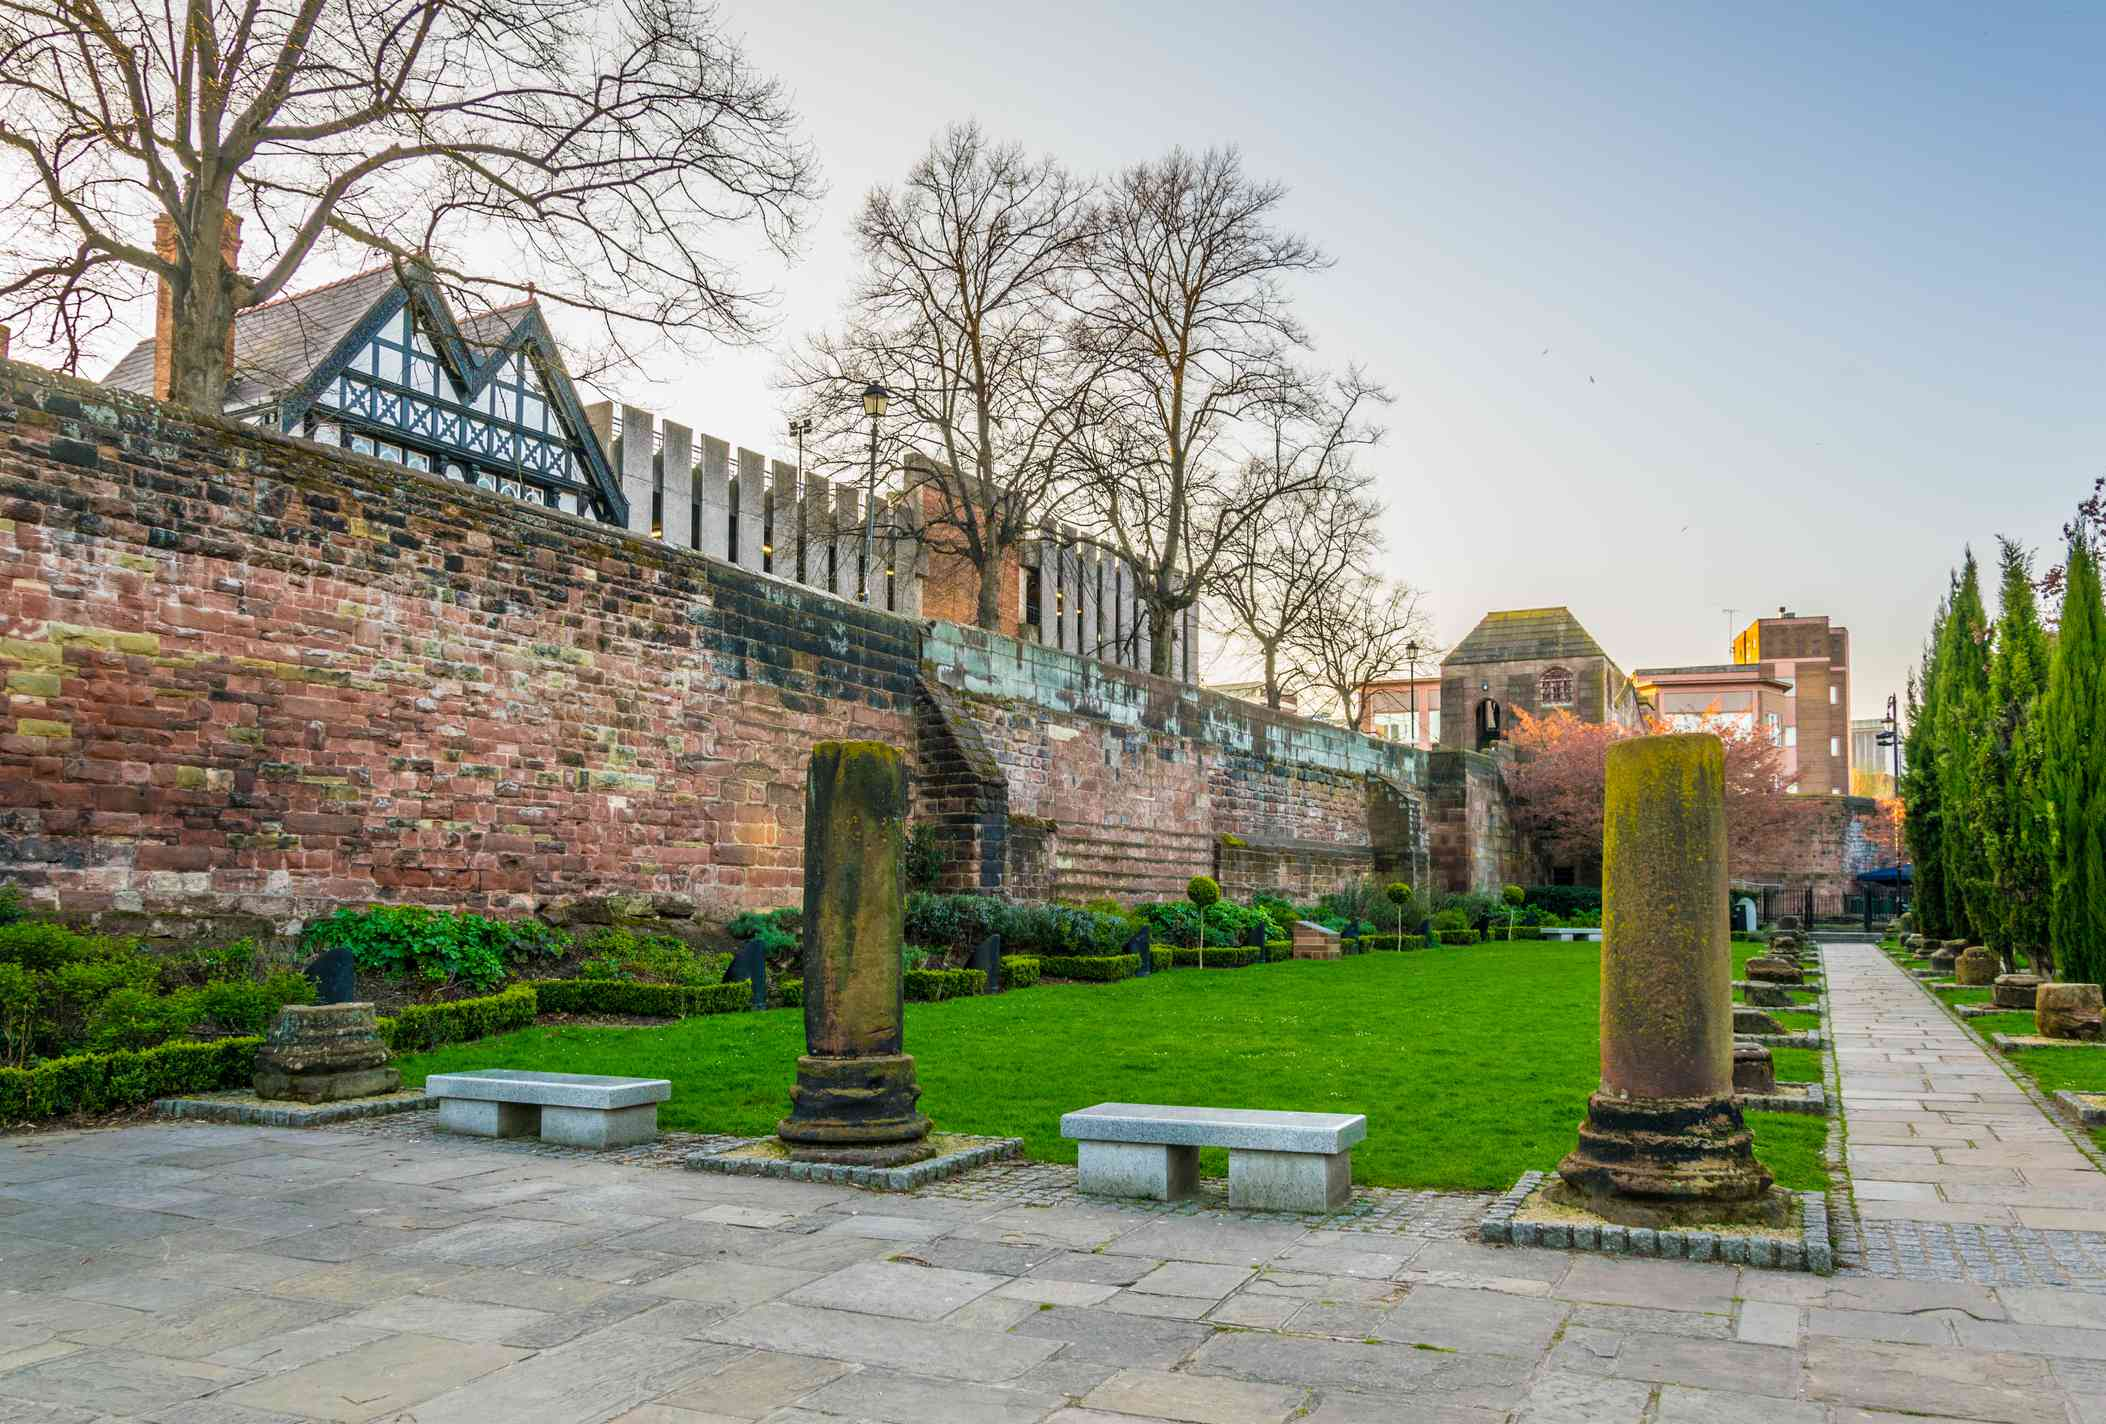 View of roman ruins in Chester, England